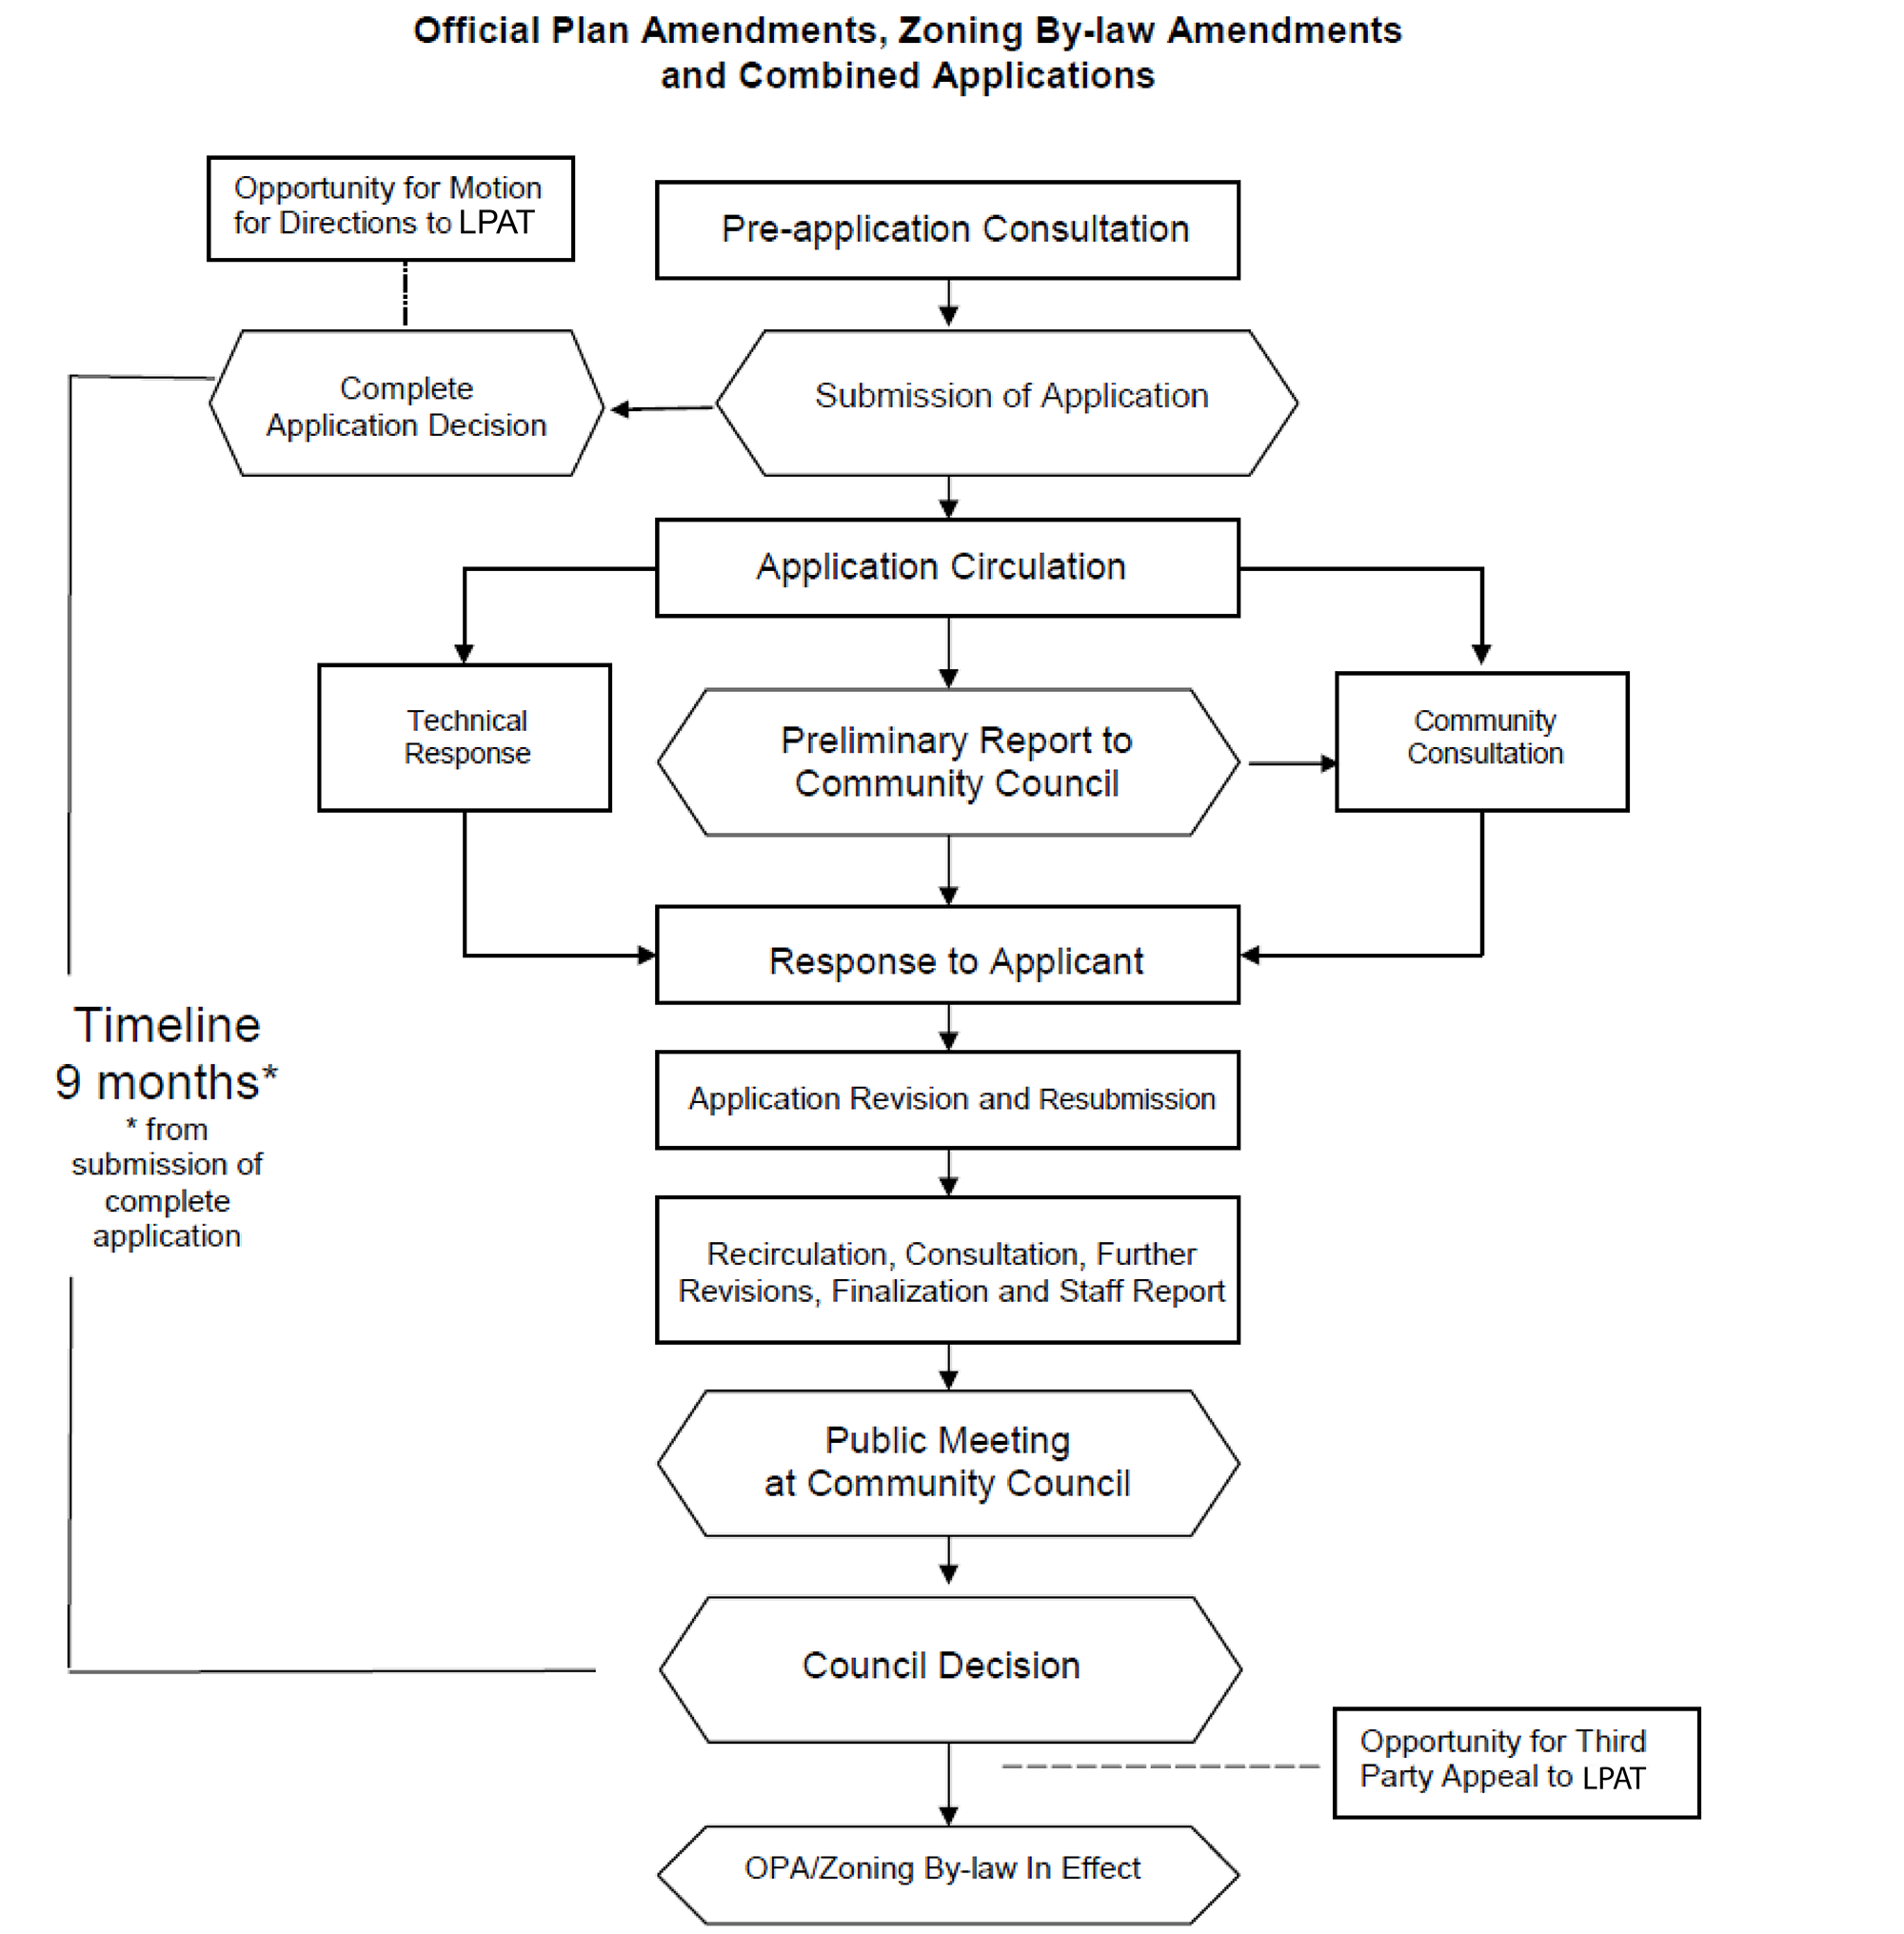 This complex flowchart shows the application process for Official Plan Amendments, Zoning By-law Amendments and Combined Applications. For more information, please email developingtoronto@toronto.ca